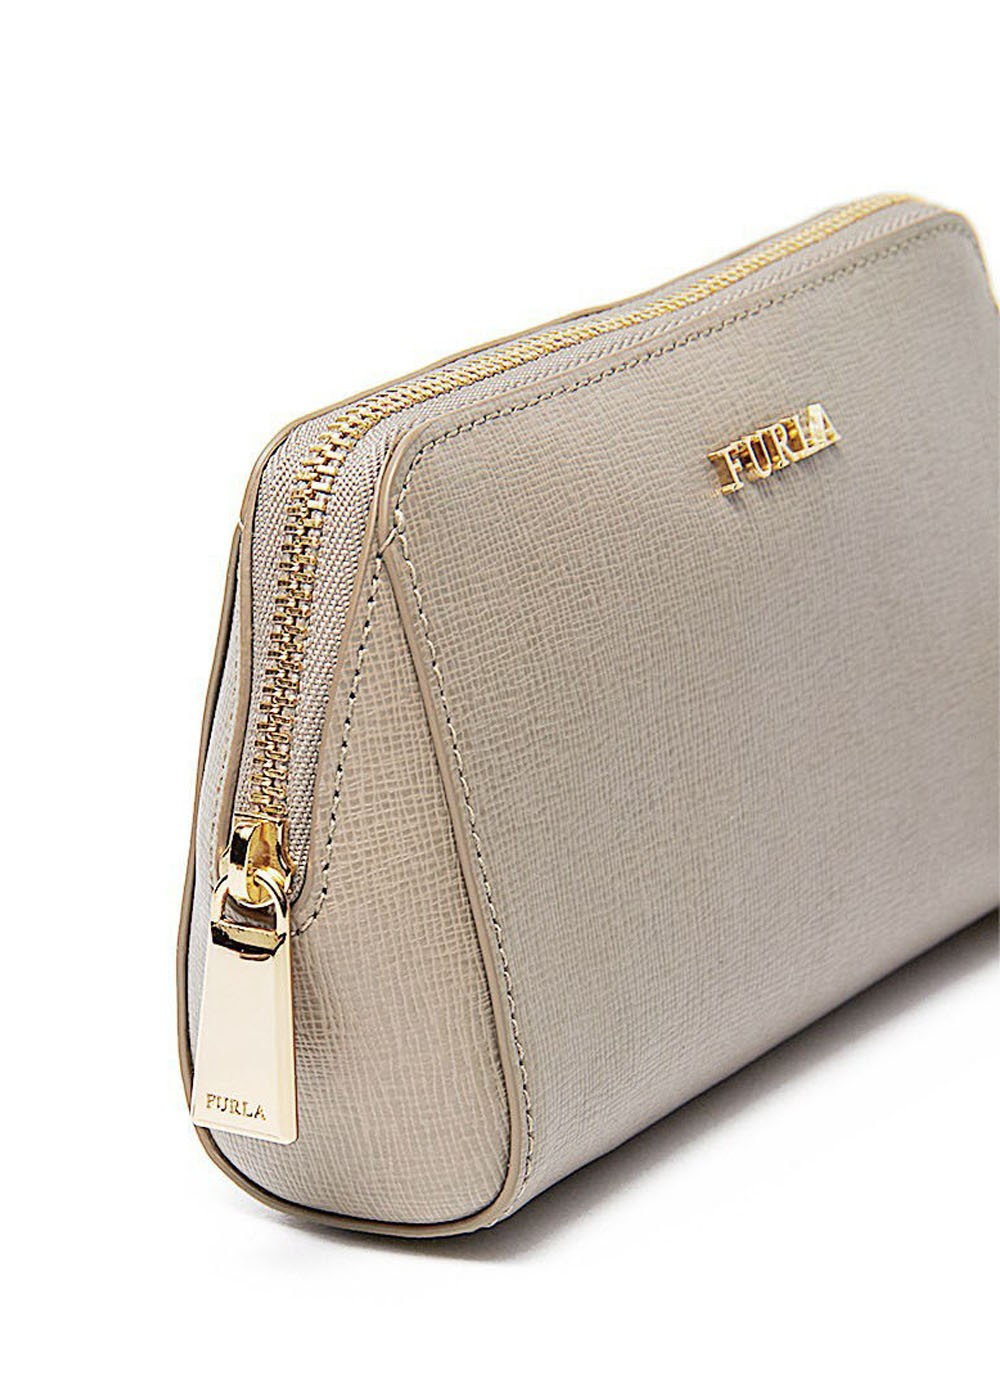 【最大44%OFF】ELECTRA M COSMETIC CASE|SABBIA b|ポーチ|FURLA - wallet and more